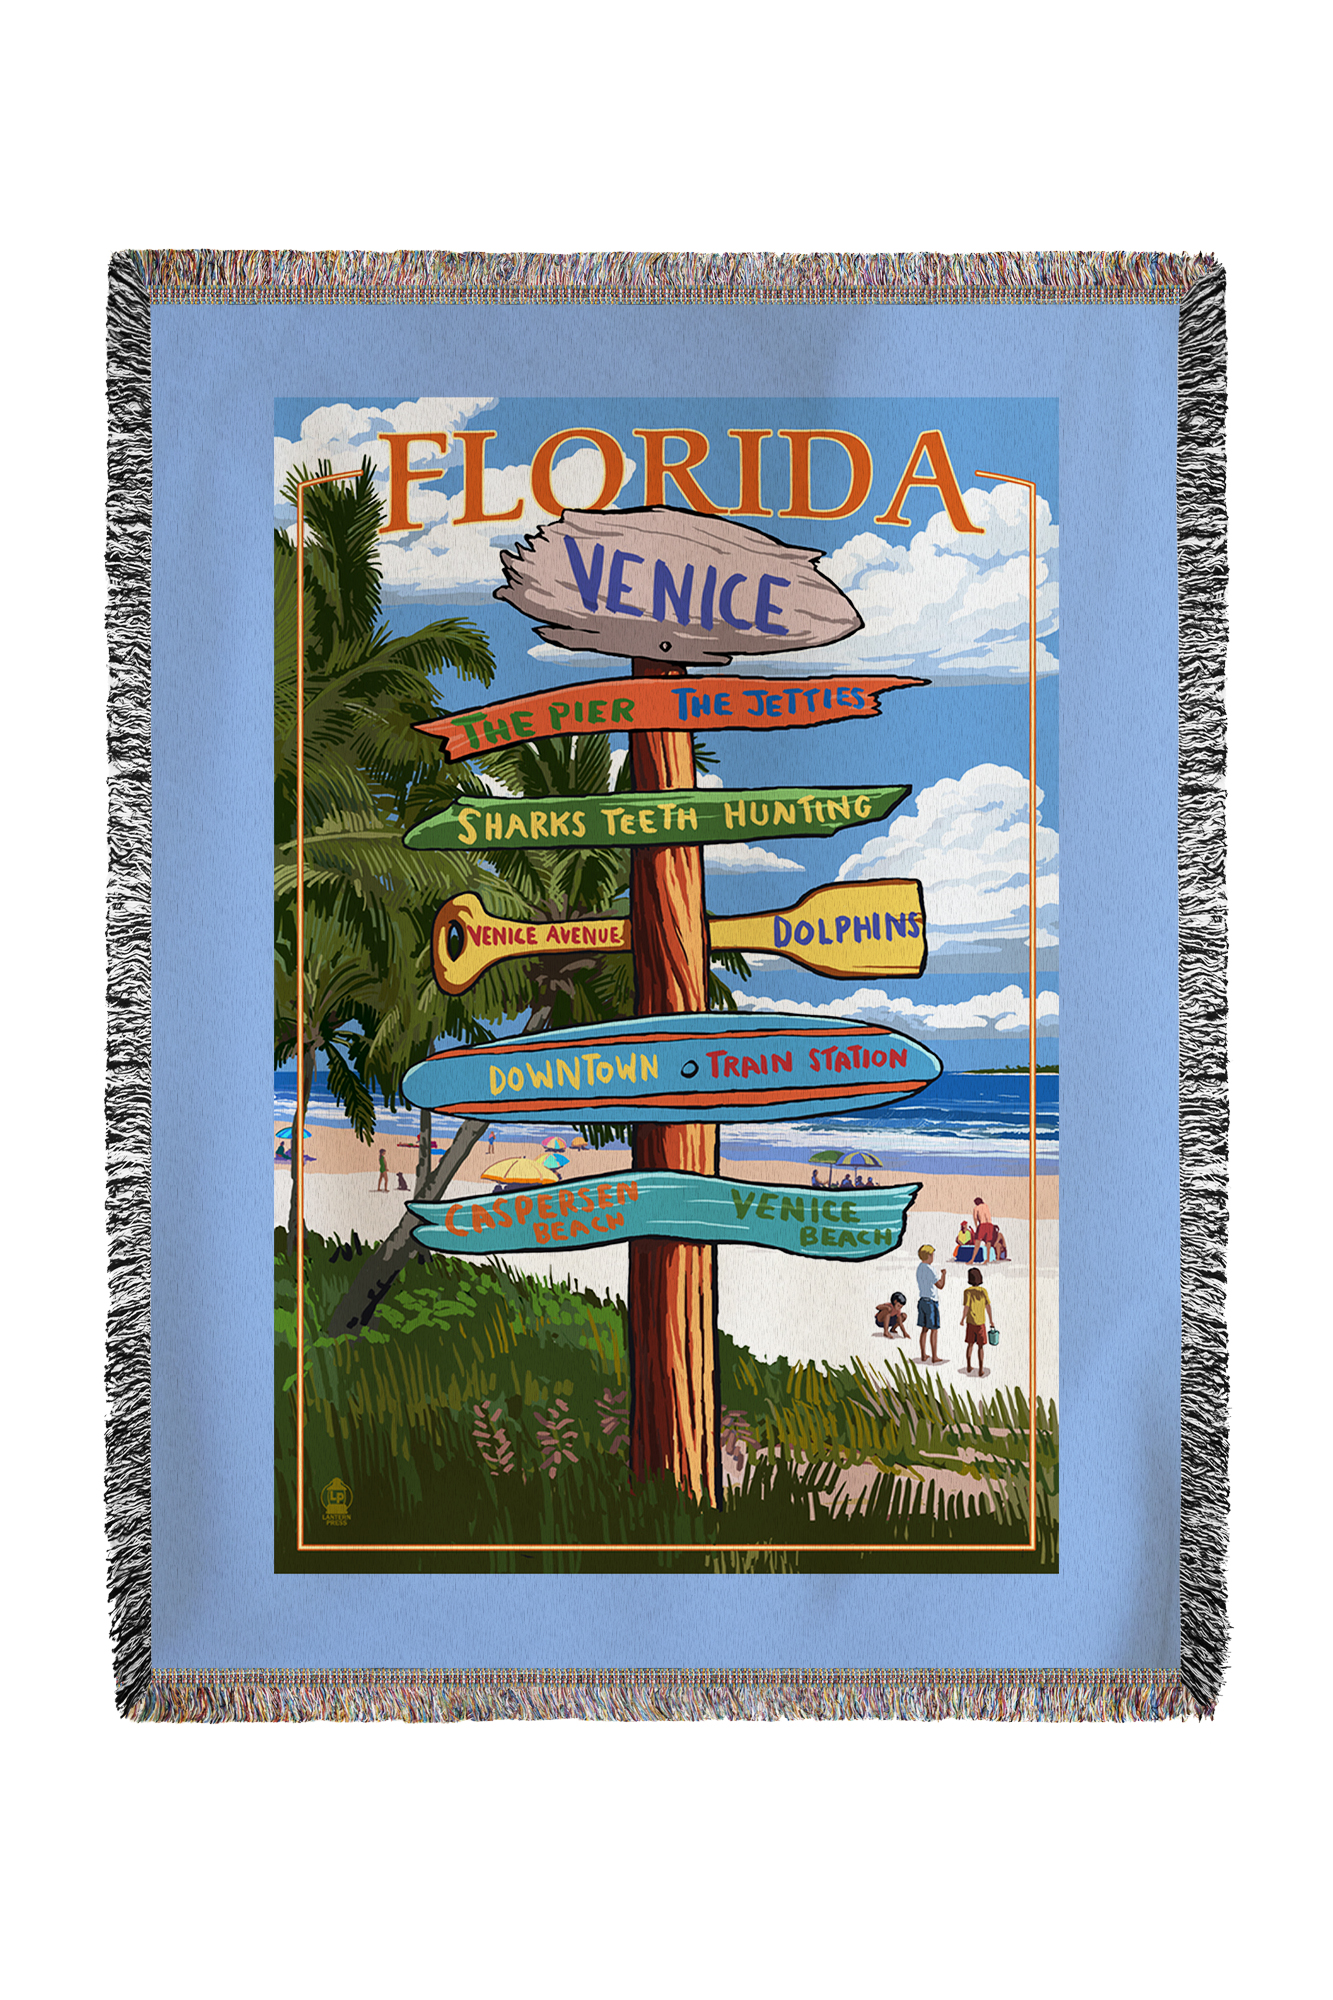 Venice, Florida Sign Post Lantern Press Artwork (60x80 Woven Chenille Yarn Blanket) by Lantern Press